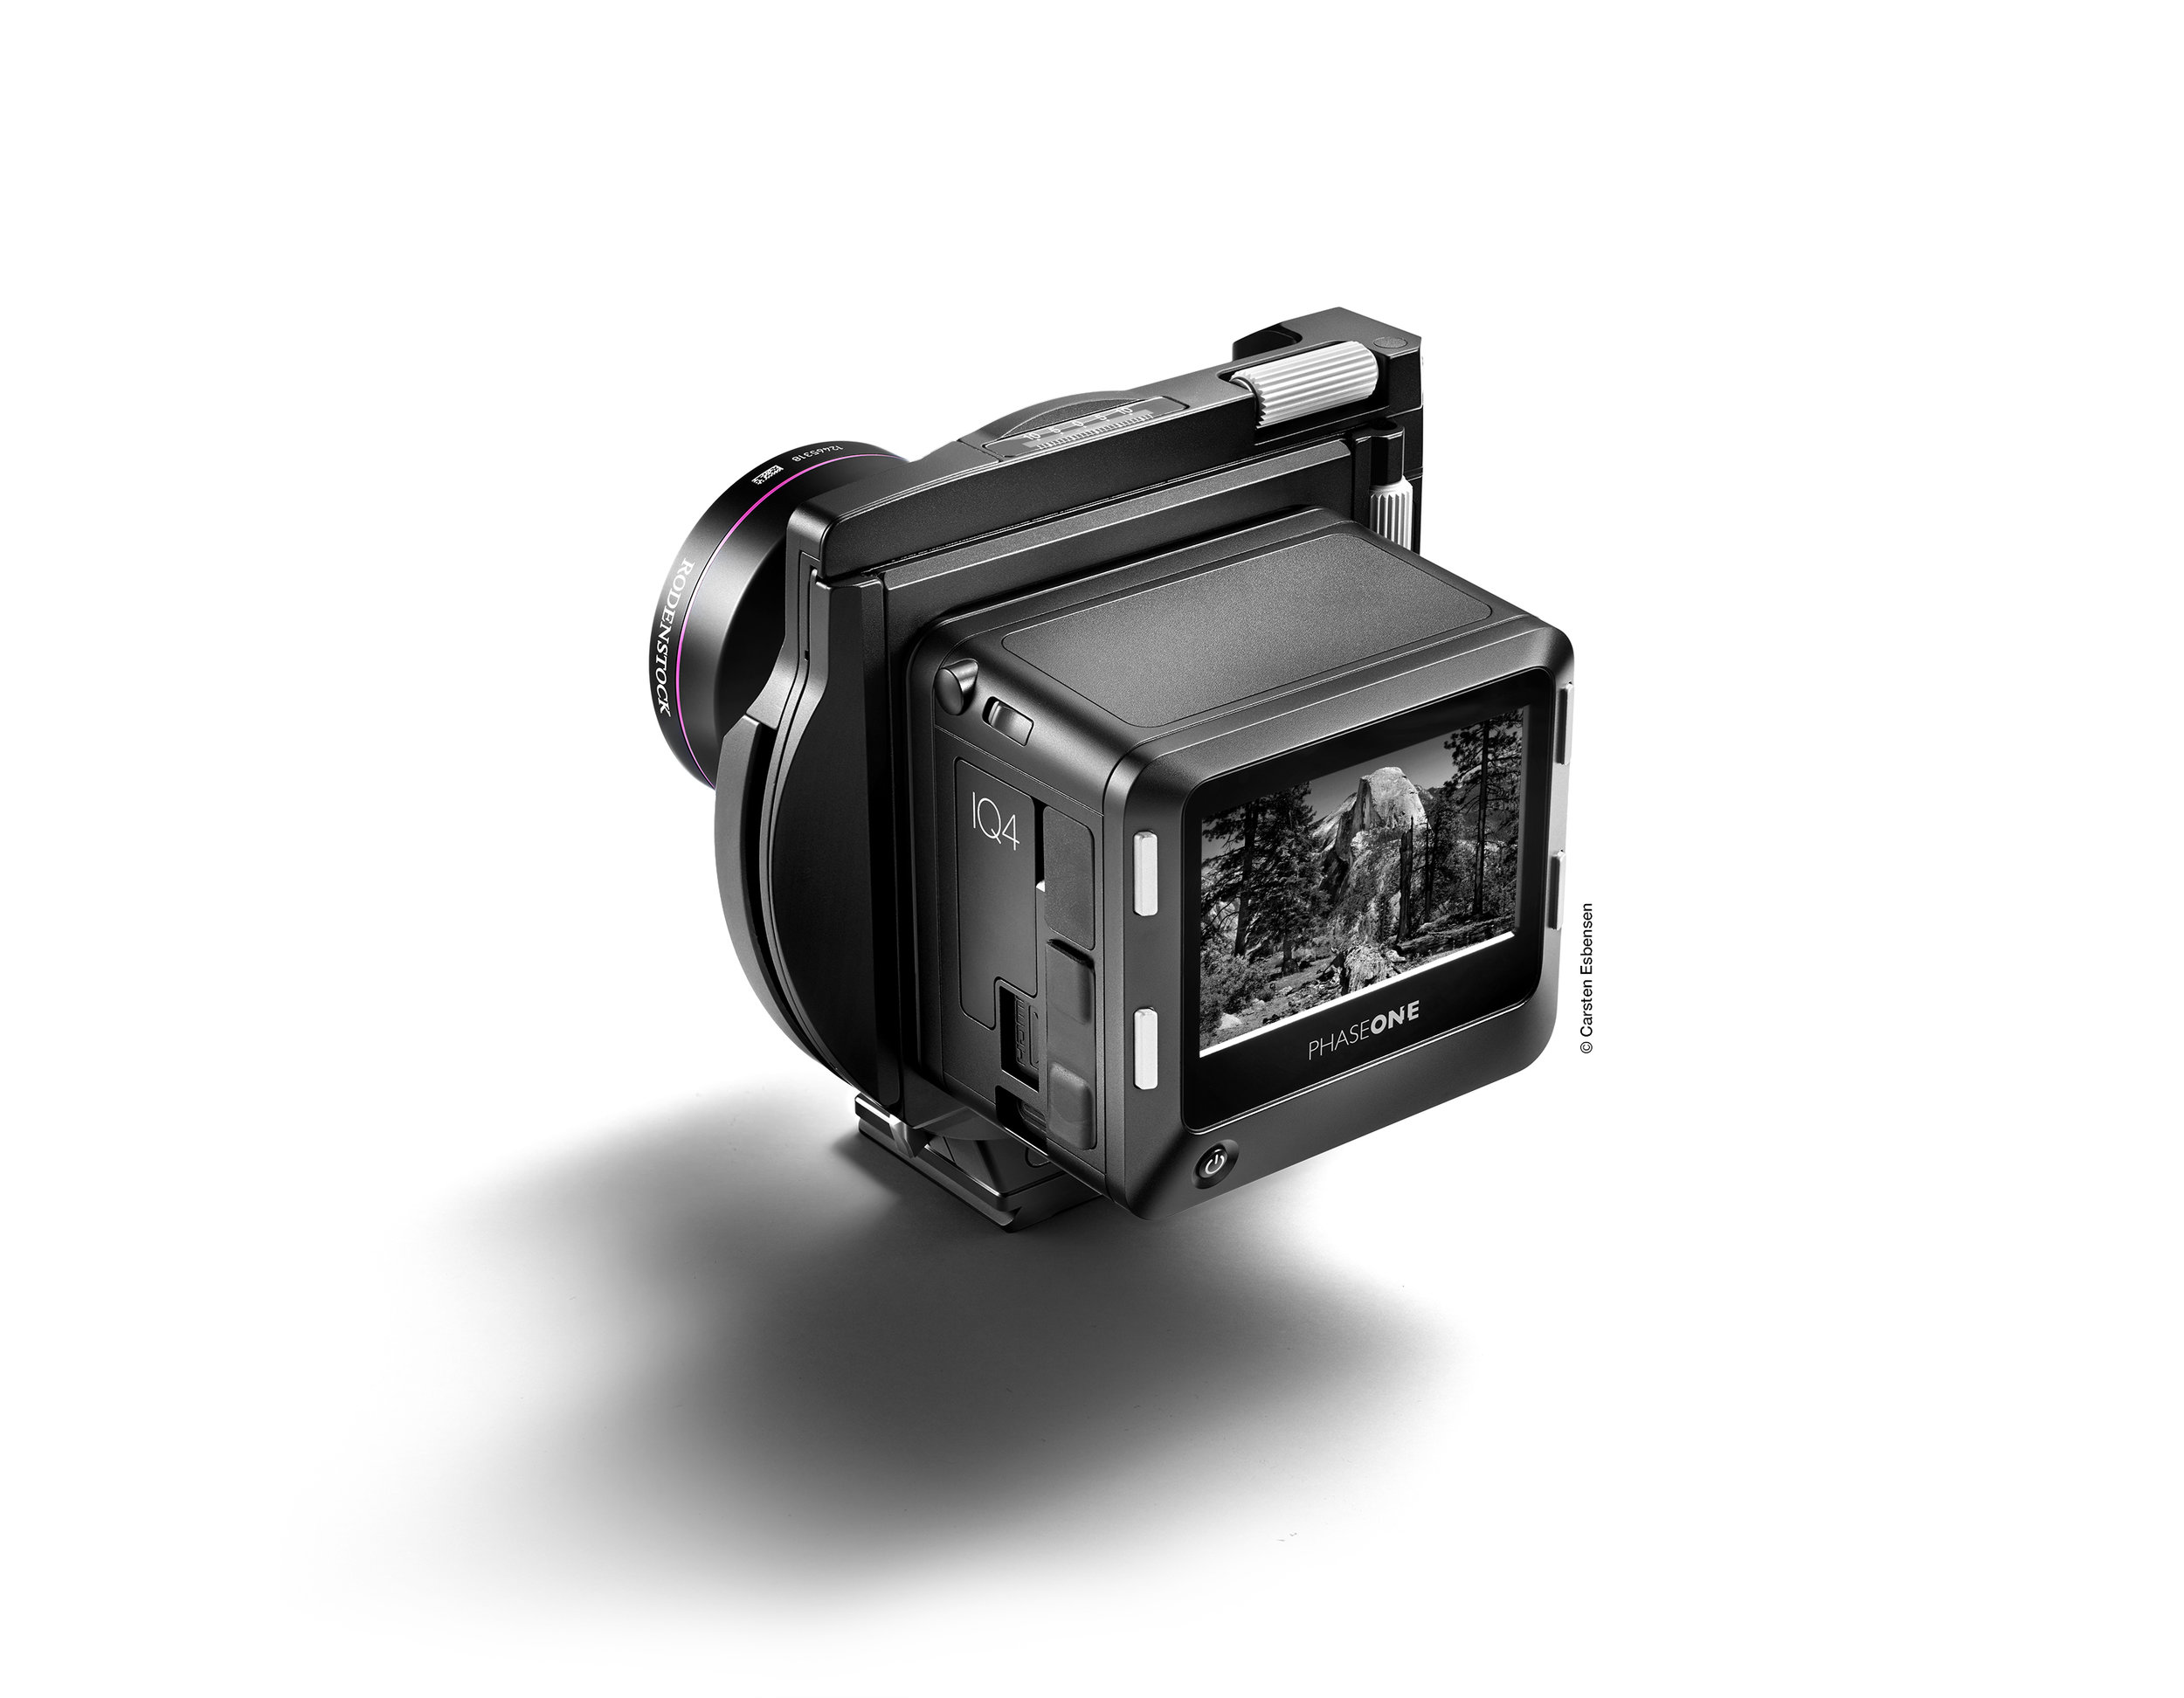 Travel-friendly design - The XT Camera System sports a modular and travel-friendly design that fits easily into your lifestyle. The form and aesthetic underline the system's priorities as a new breed of camera, masterfully designed for convenience without sacrificing quality.